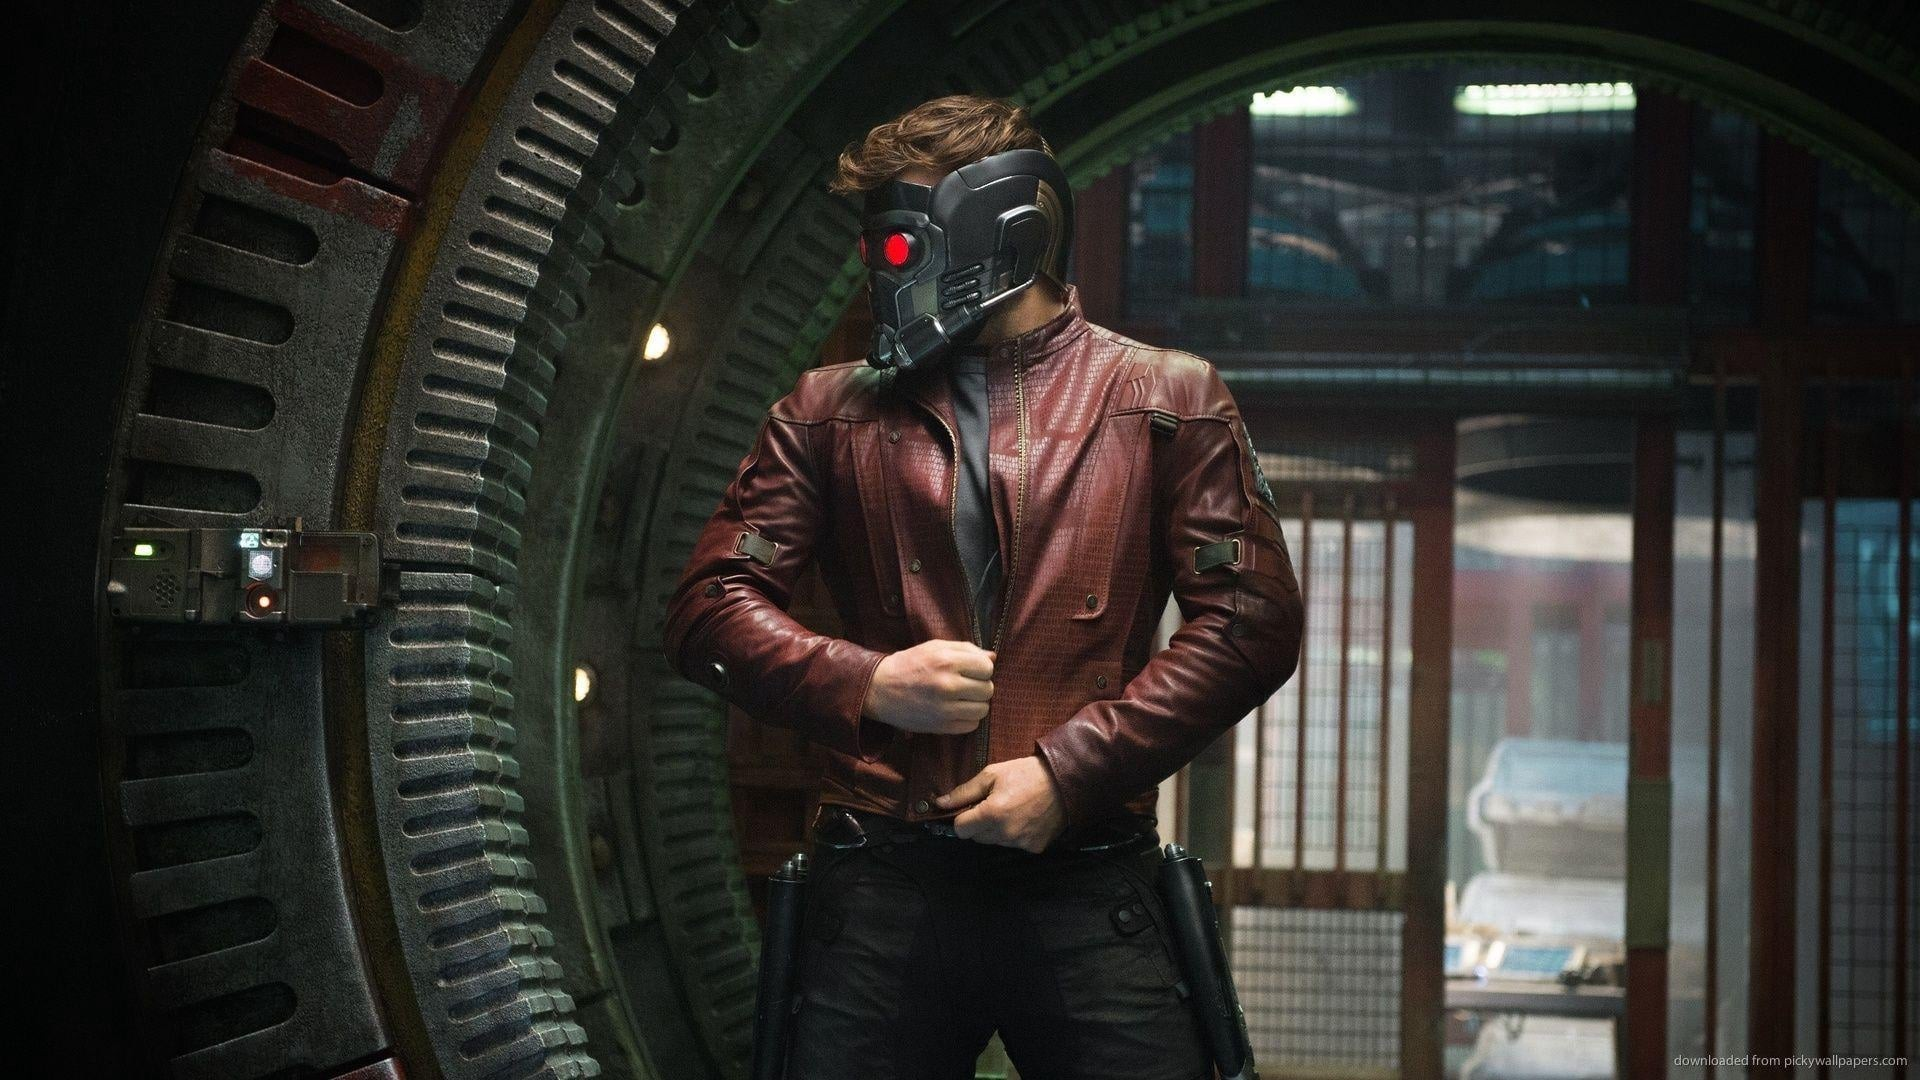 guardians of the galaxy full movie watch online free